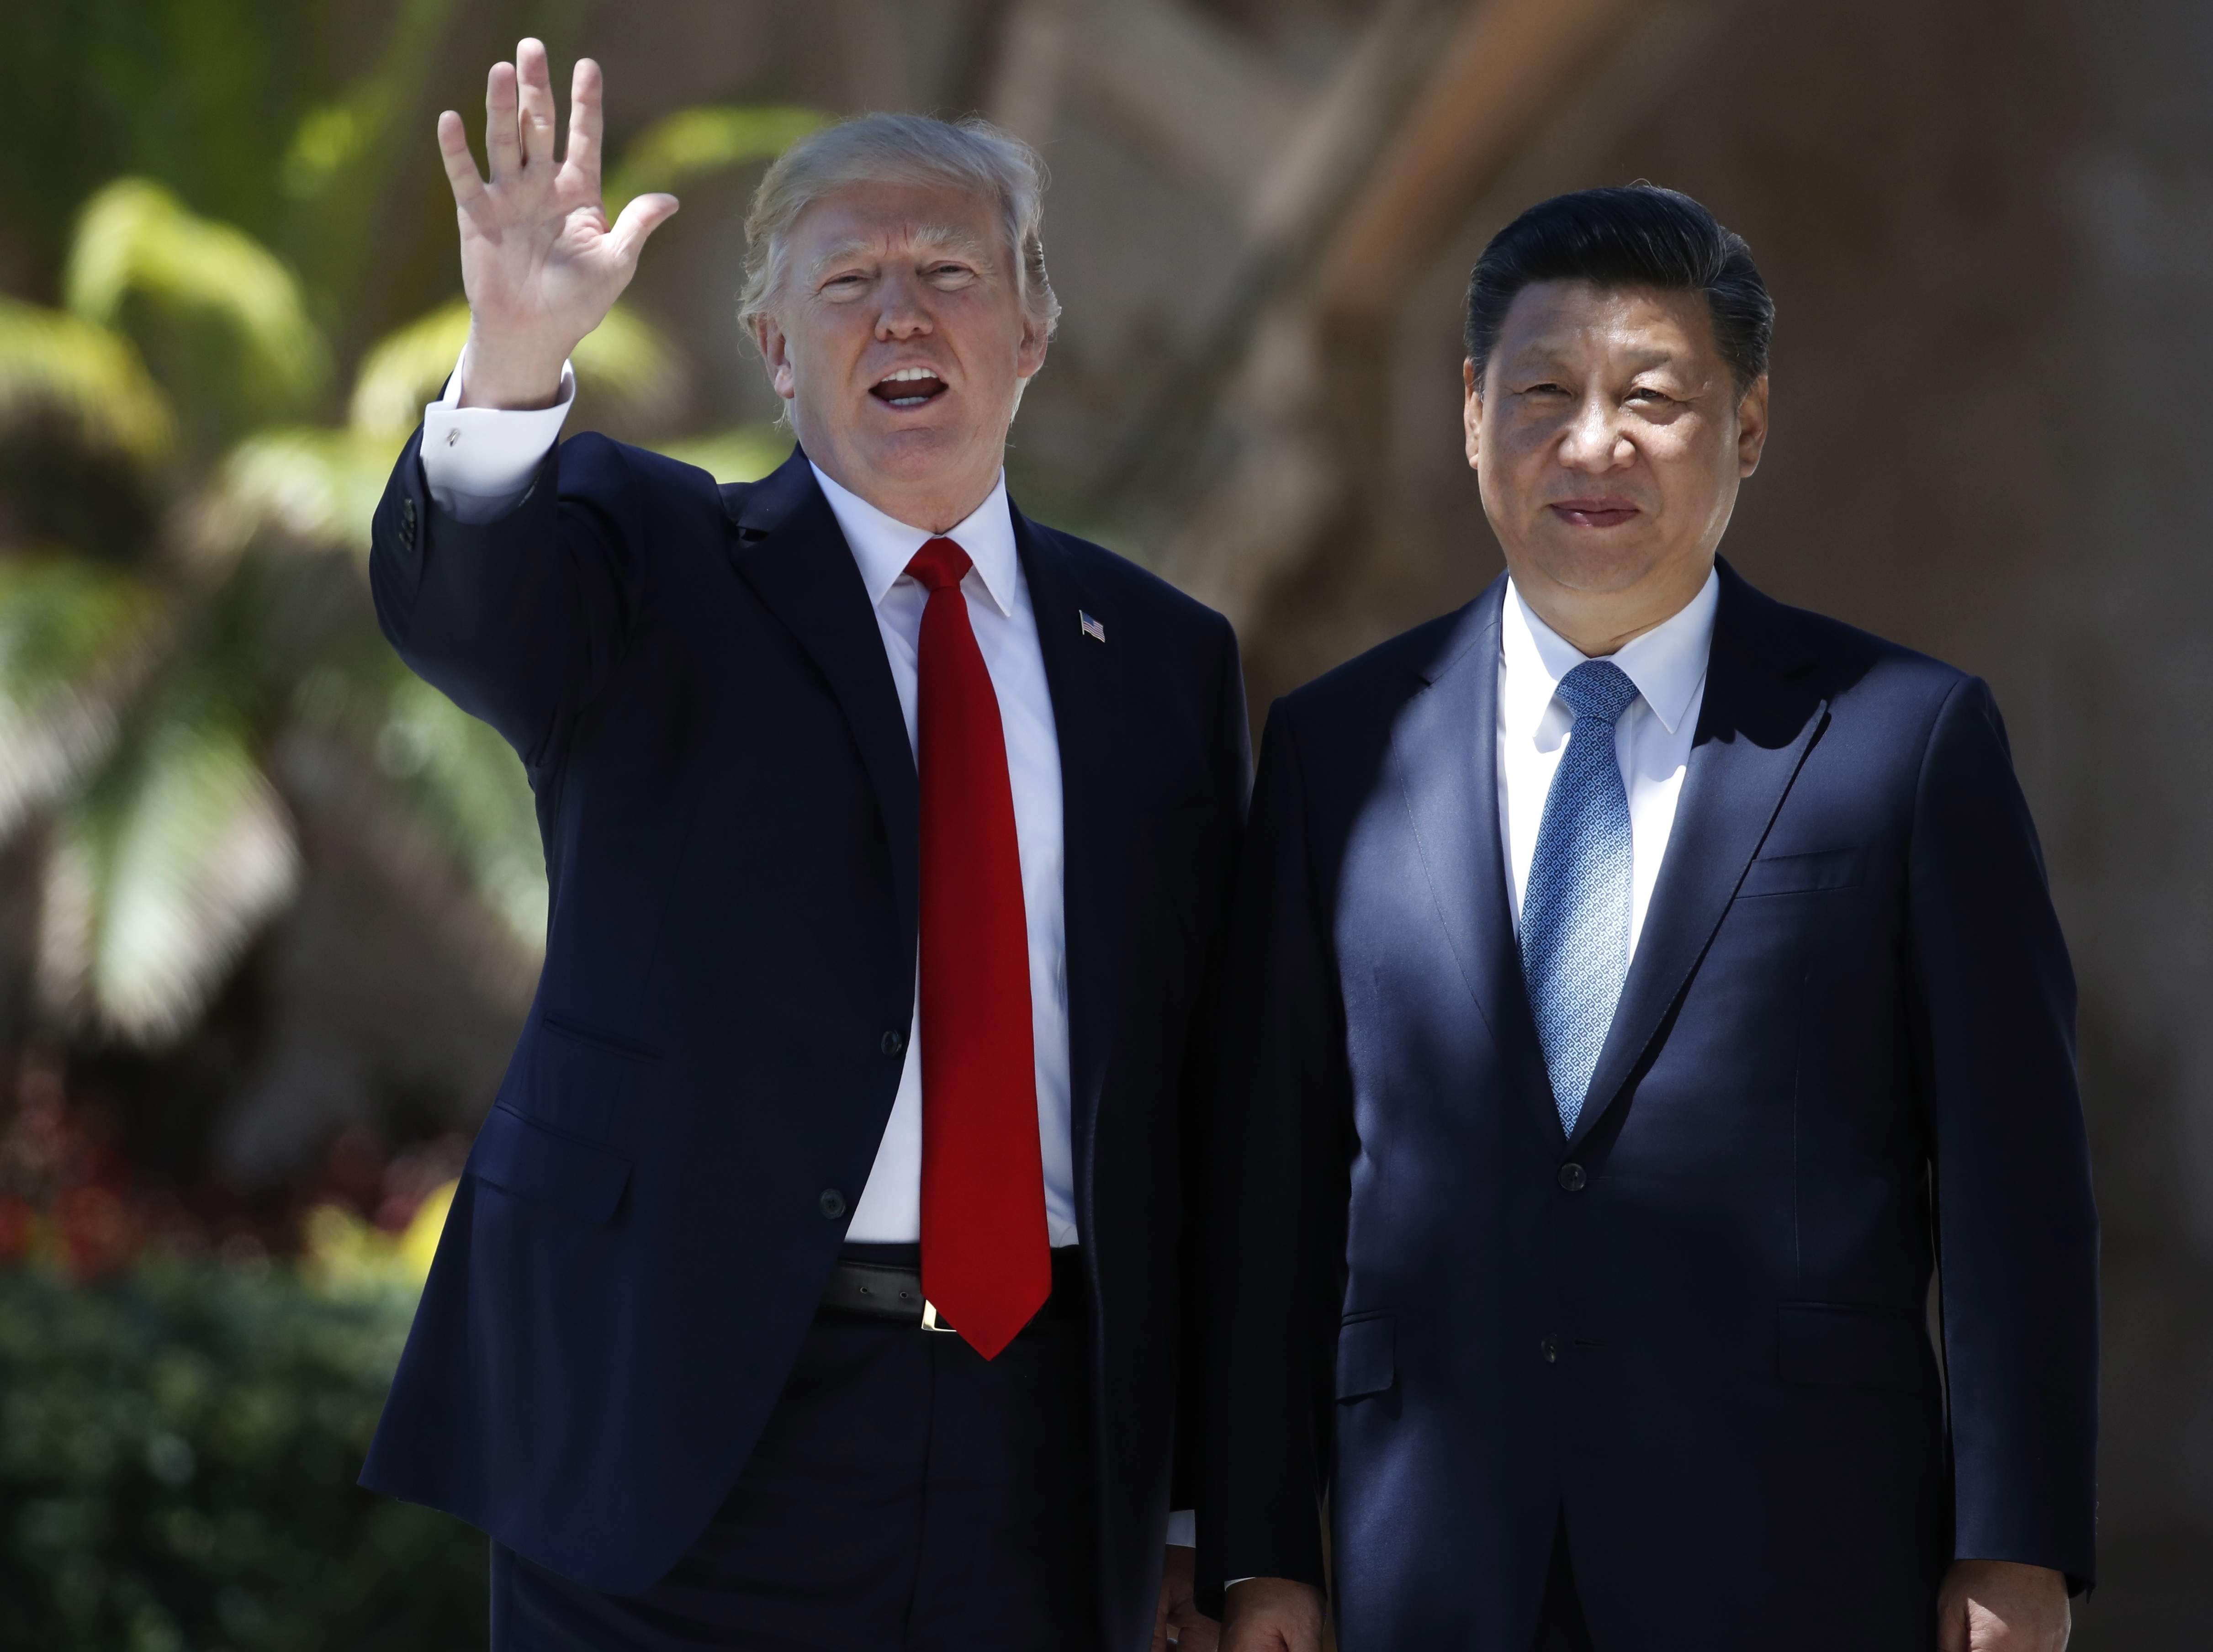 DAY 78 - In this April 7, 2017, file photo, President Donald Trump and Chinese President Xi Jinping pause for photographs at Mar-a-Lago, in Palm Beach, Fla. (AP Photo/Alex Brandon, File)